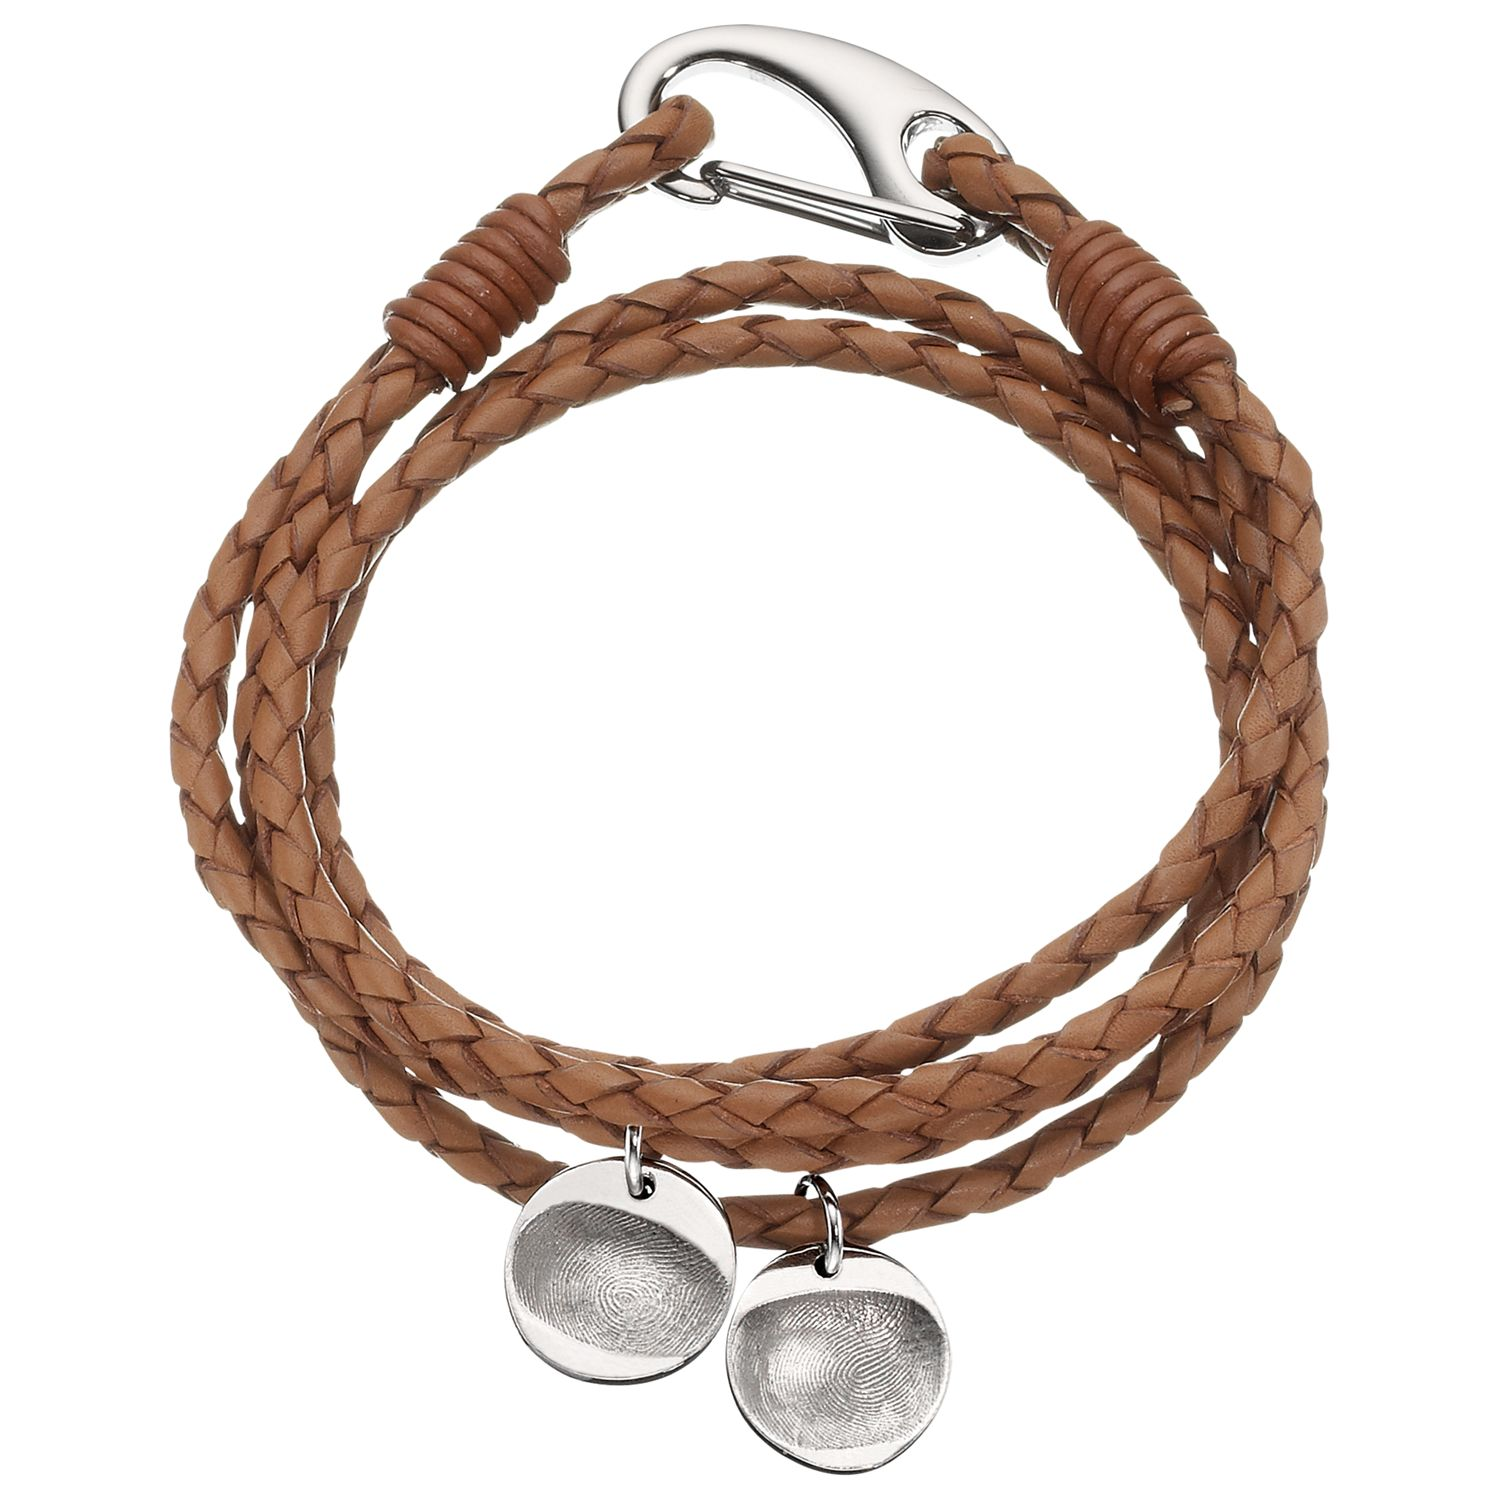 Under The Rose Under the Rose Personalised Men's Leather Bracelet, 2 Charms